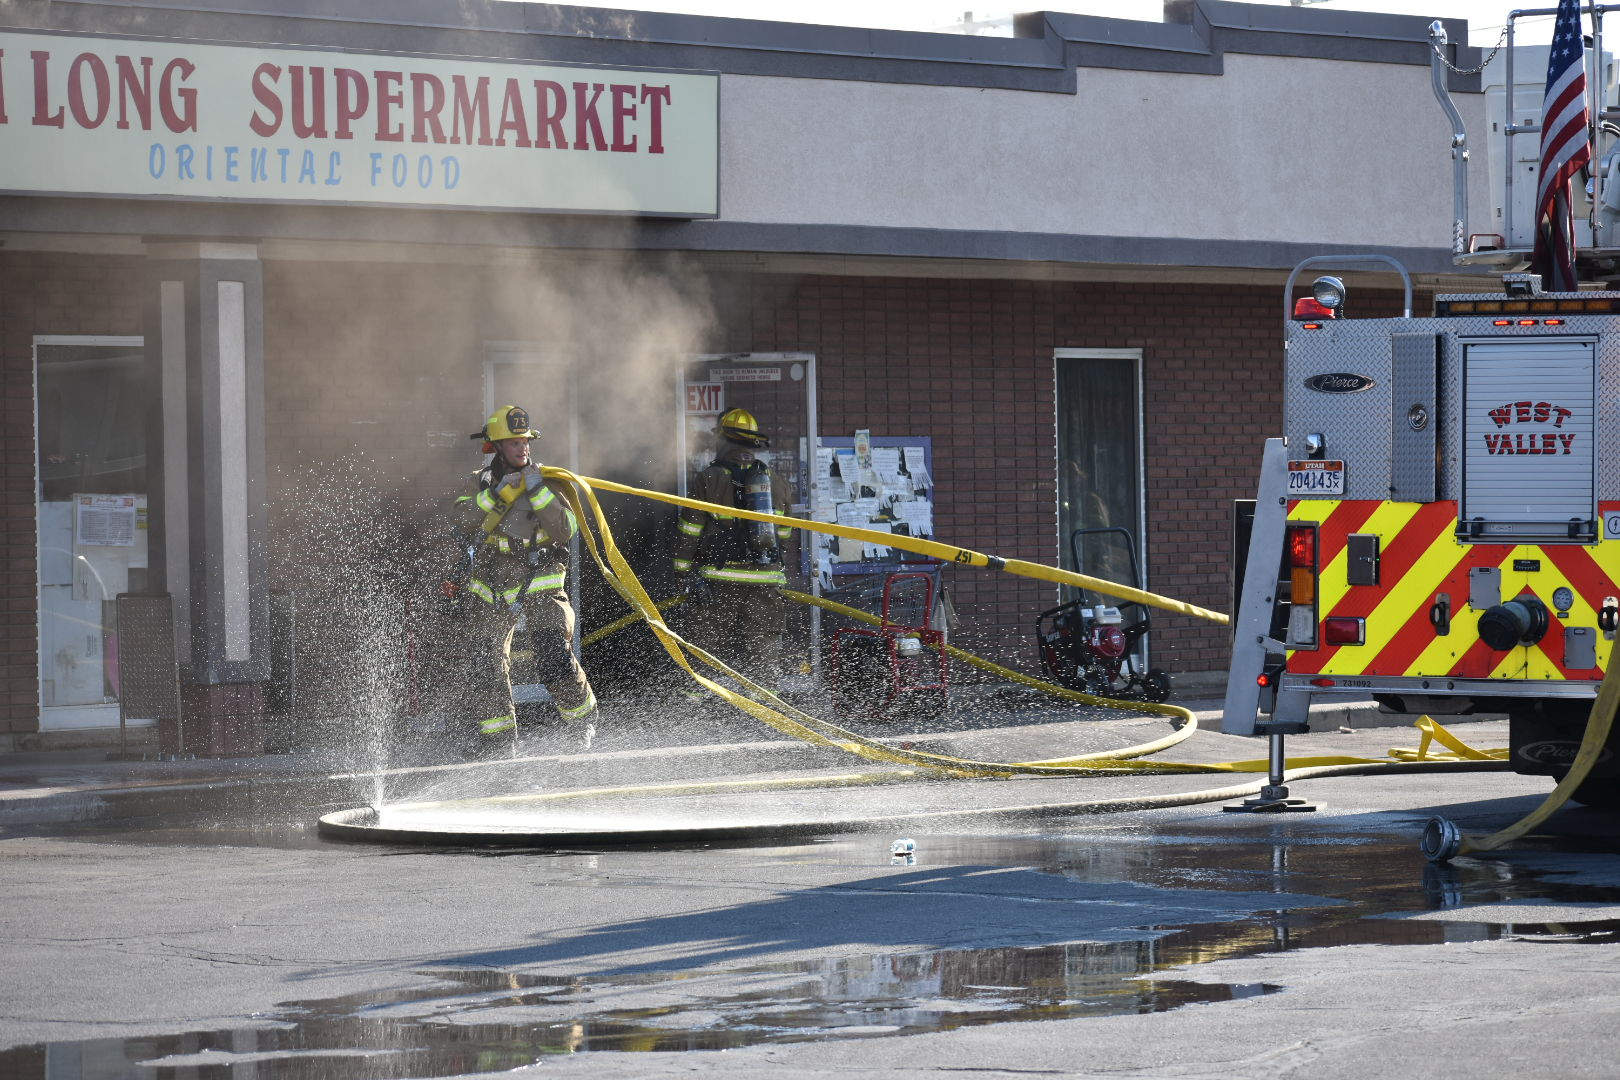 Crews extinguish blaze at supermarket in West Valley City